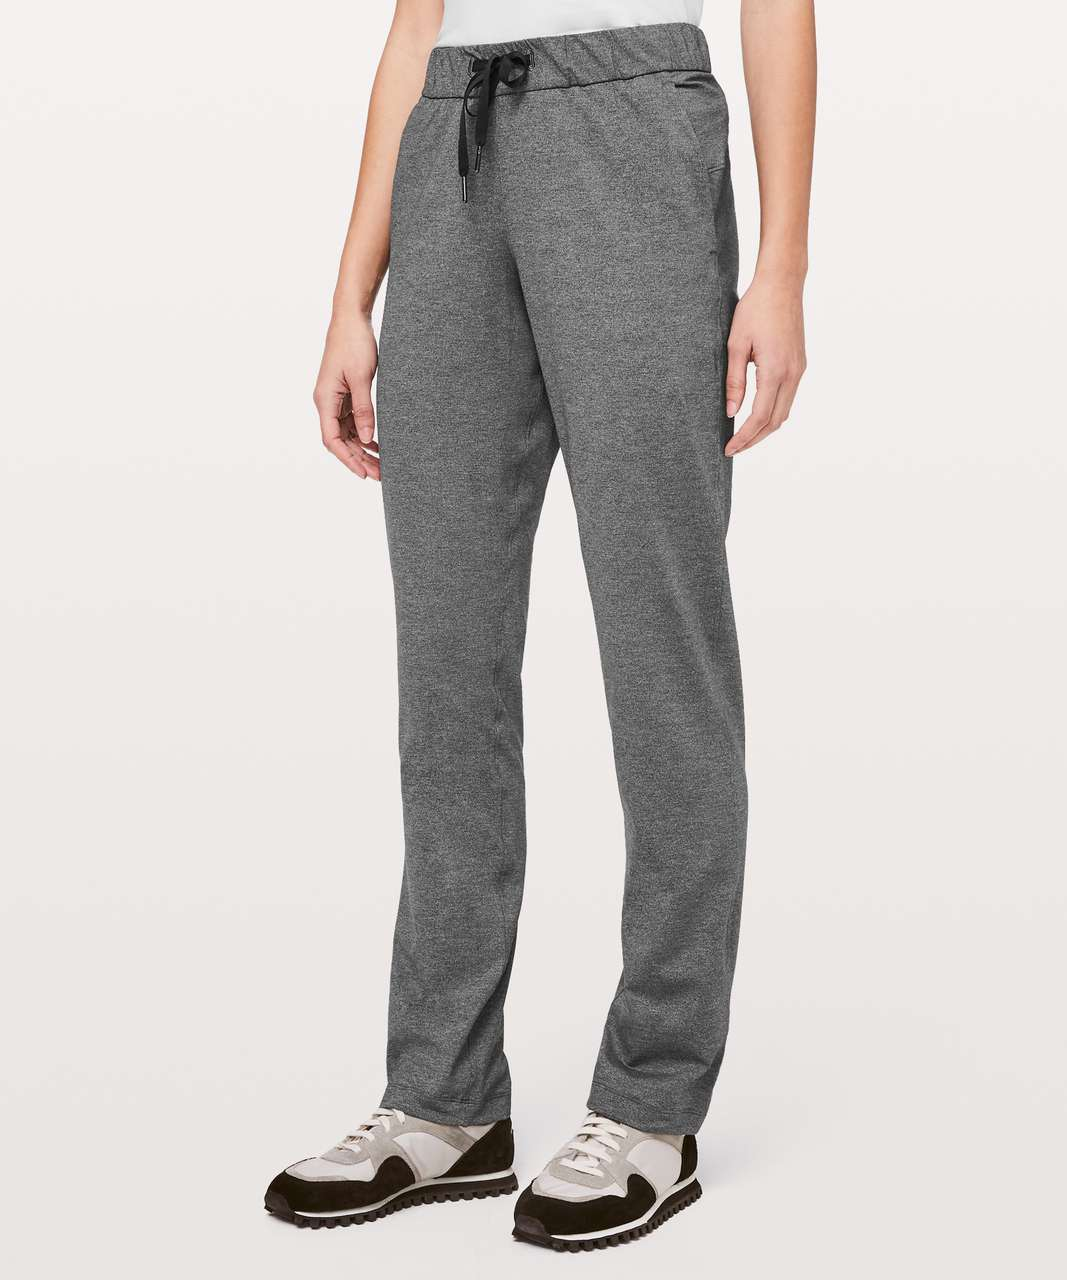 cf1918a80 Lululemon On The Fly Pant Full Length 31